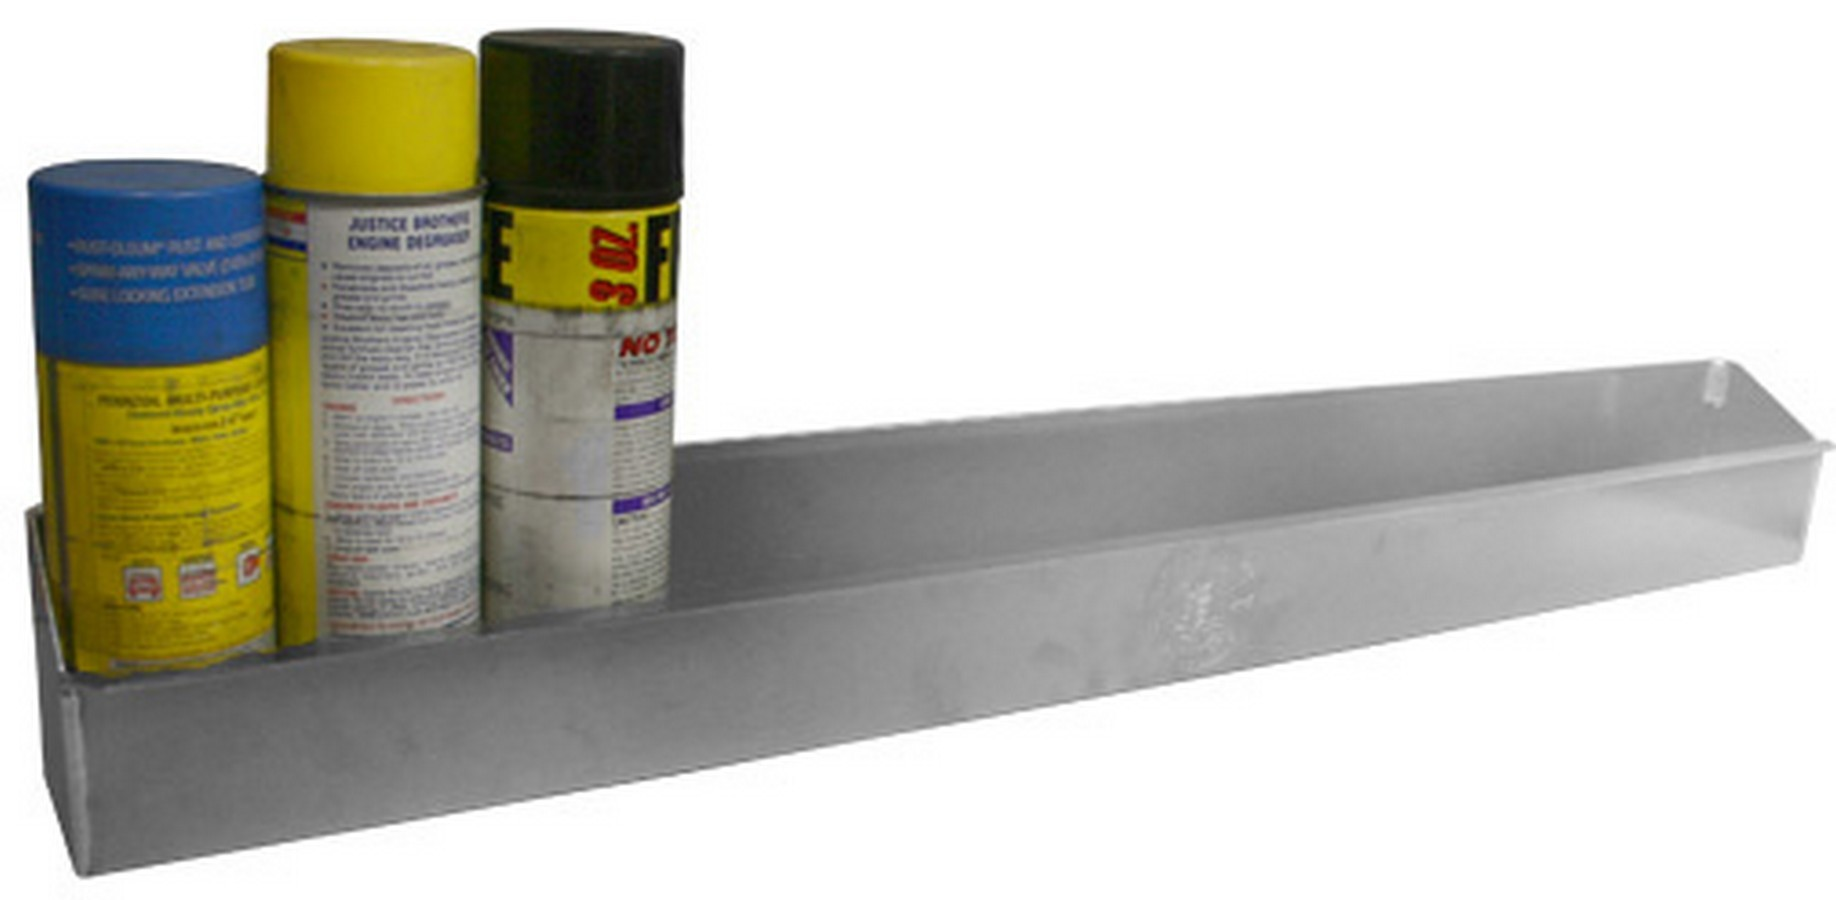 Pit Pal Products 101 Aerosol Can Holder, 32-1/2 in Long, 2-3/4 in Deep, 12 Can Capacity, Aluminum, Natural, Each